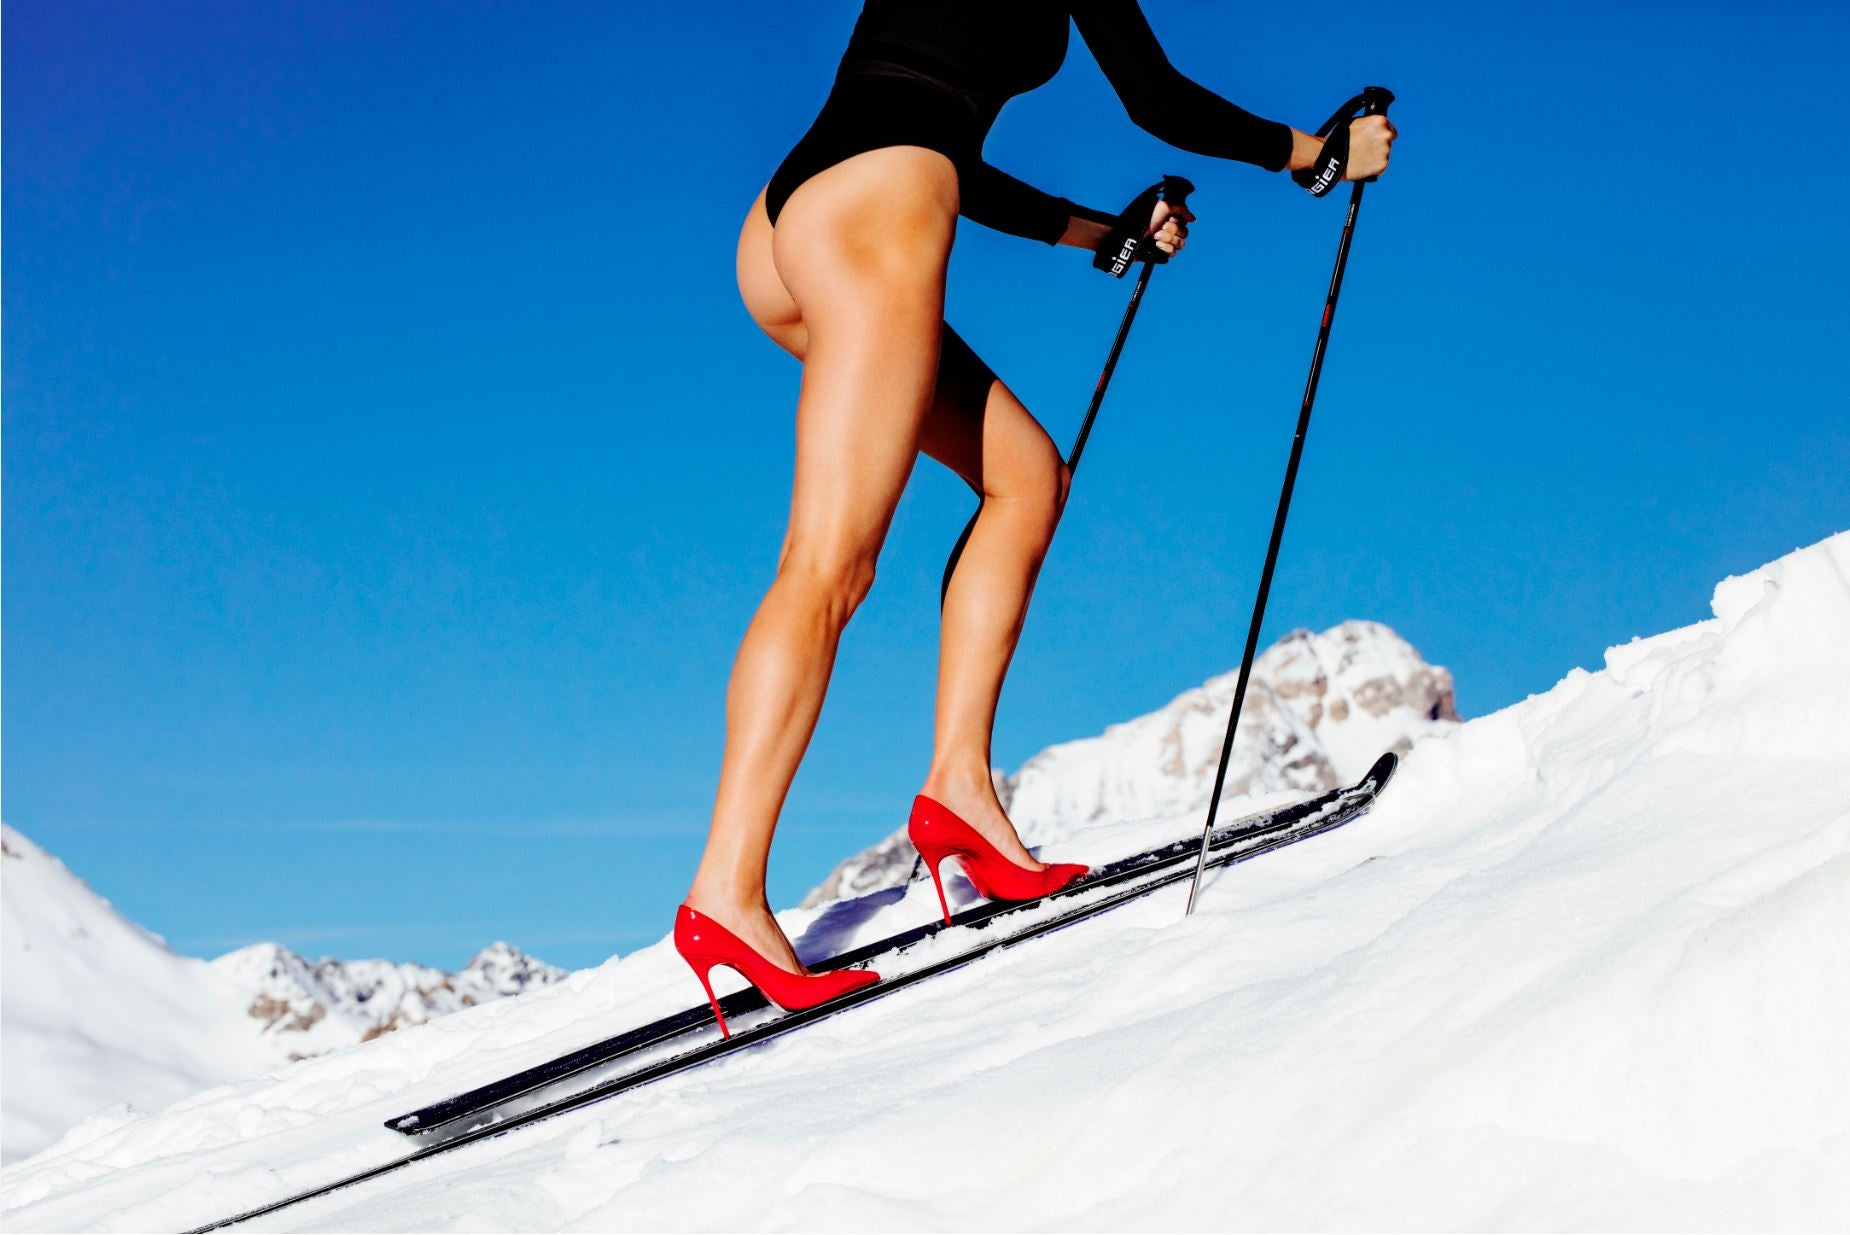 Ski Patrol II - model skiiing with high heels and mountains in the background